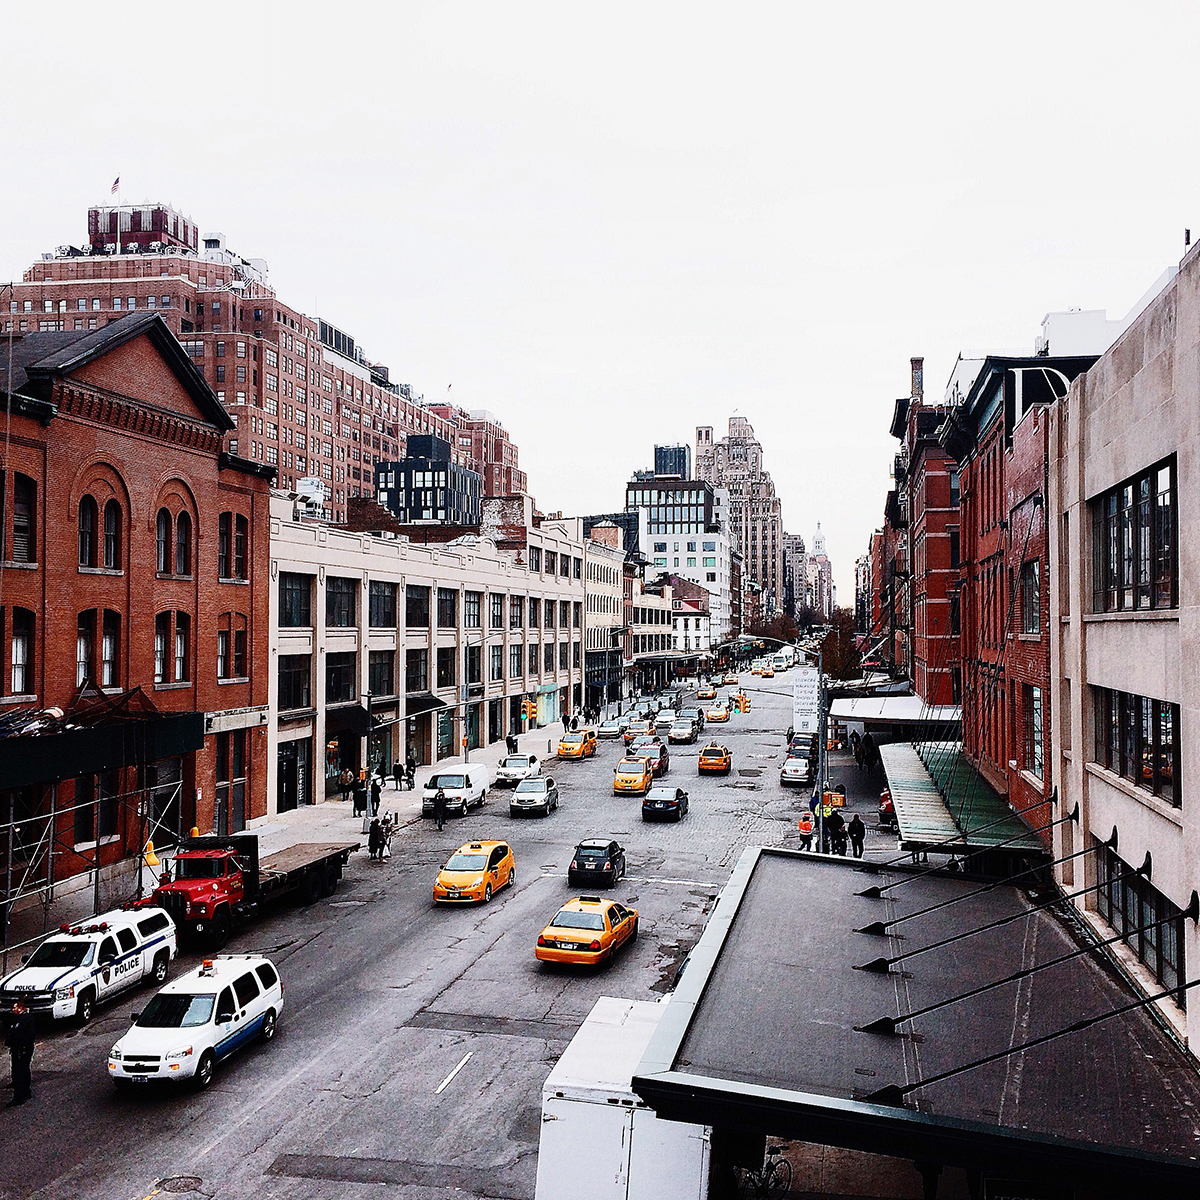 ragnhild utne, utnephoto, chelsea, new york, manhattan, meatpacking district, the high line, street, taxis, city